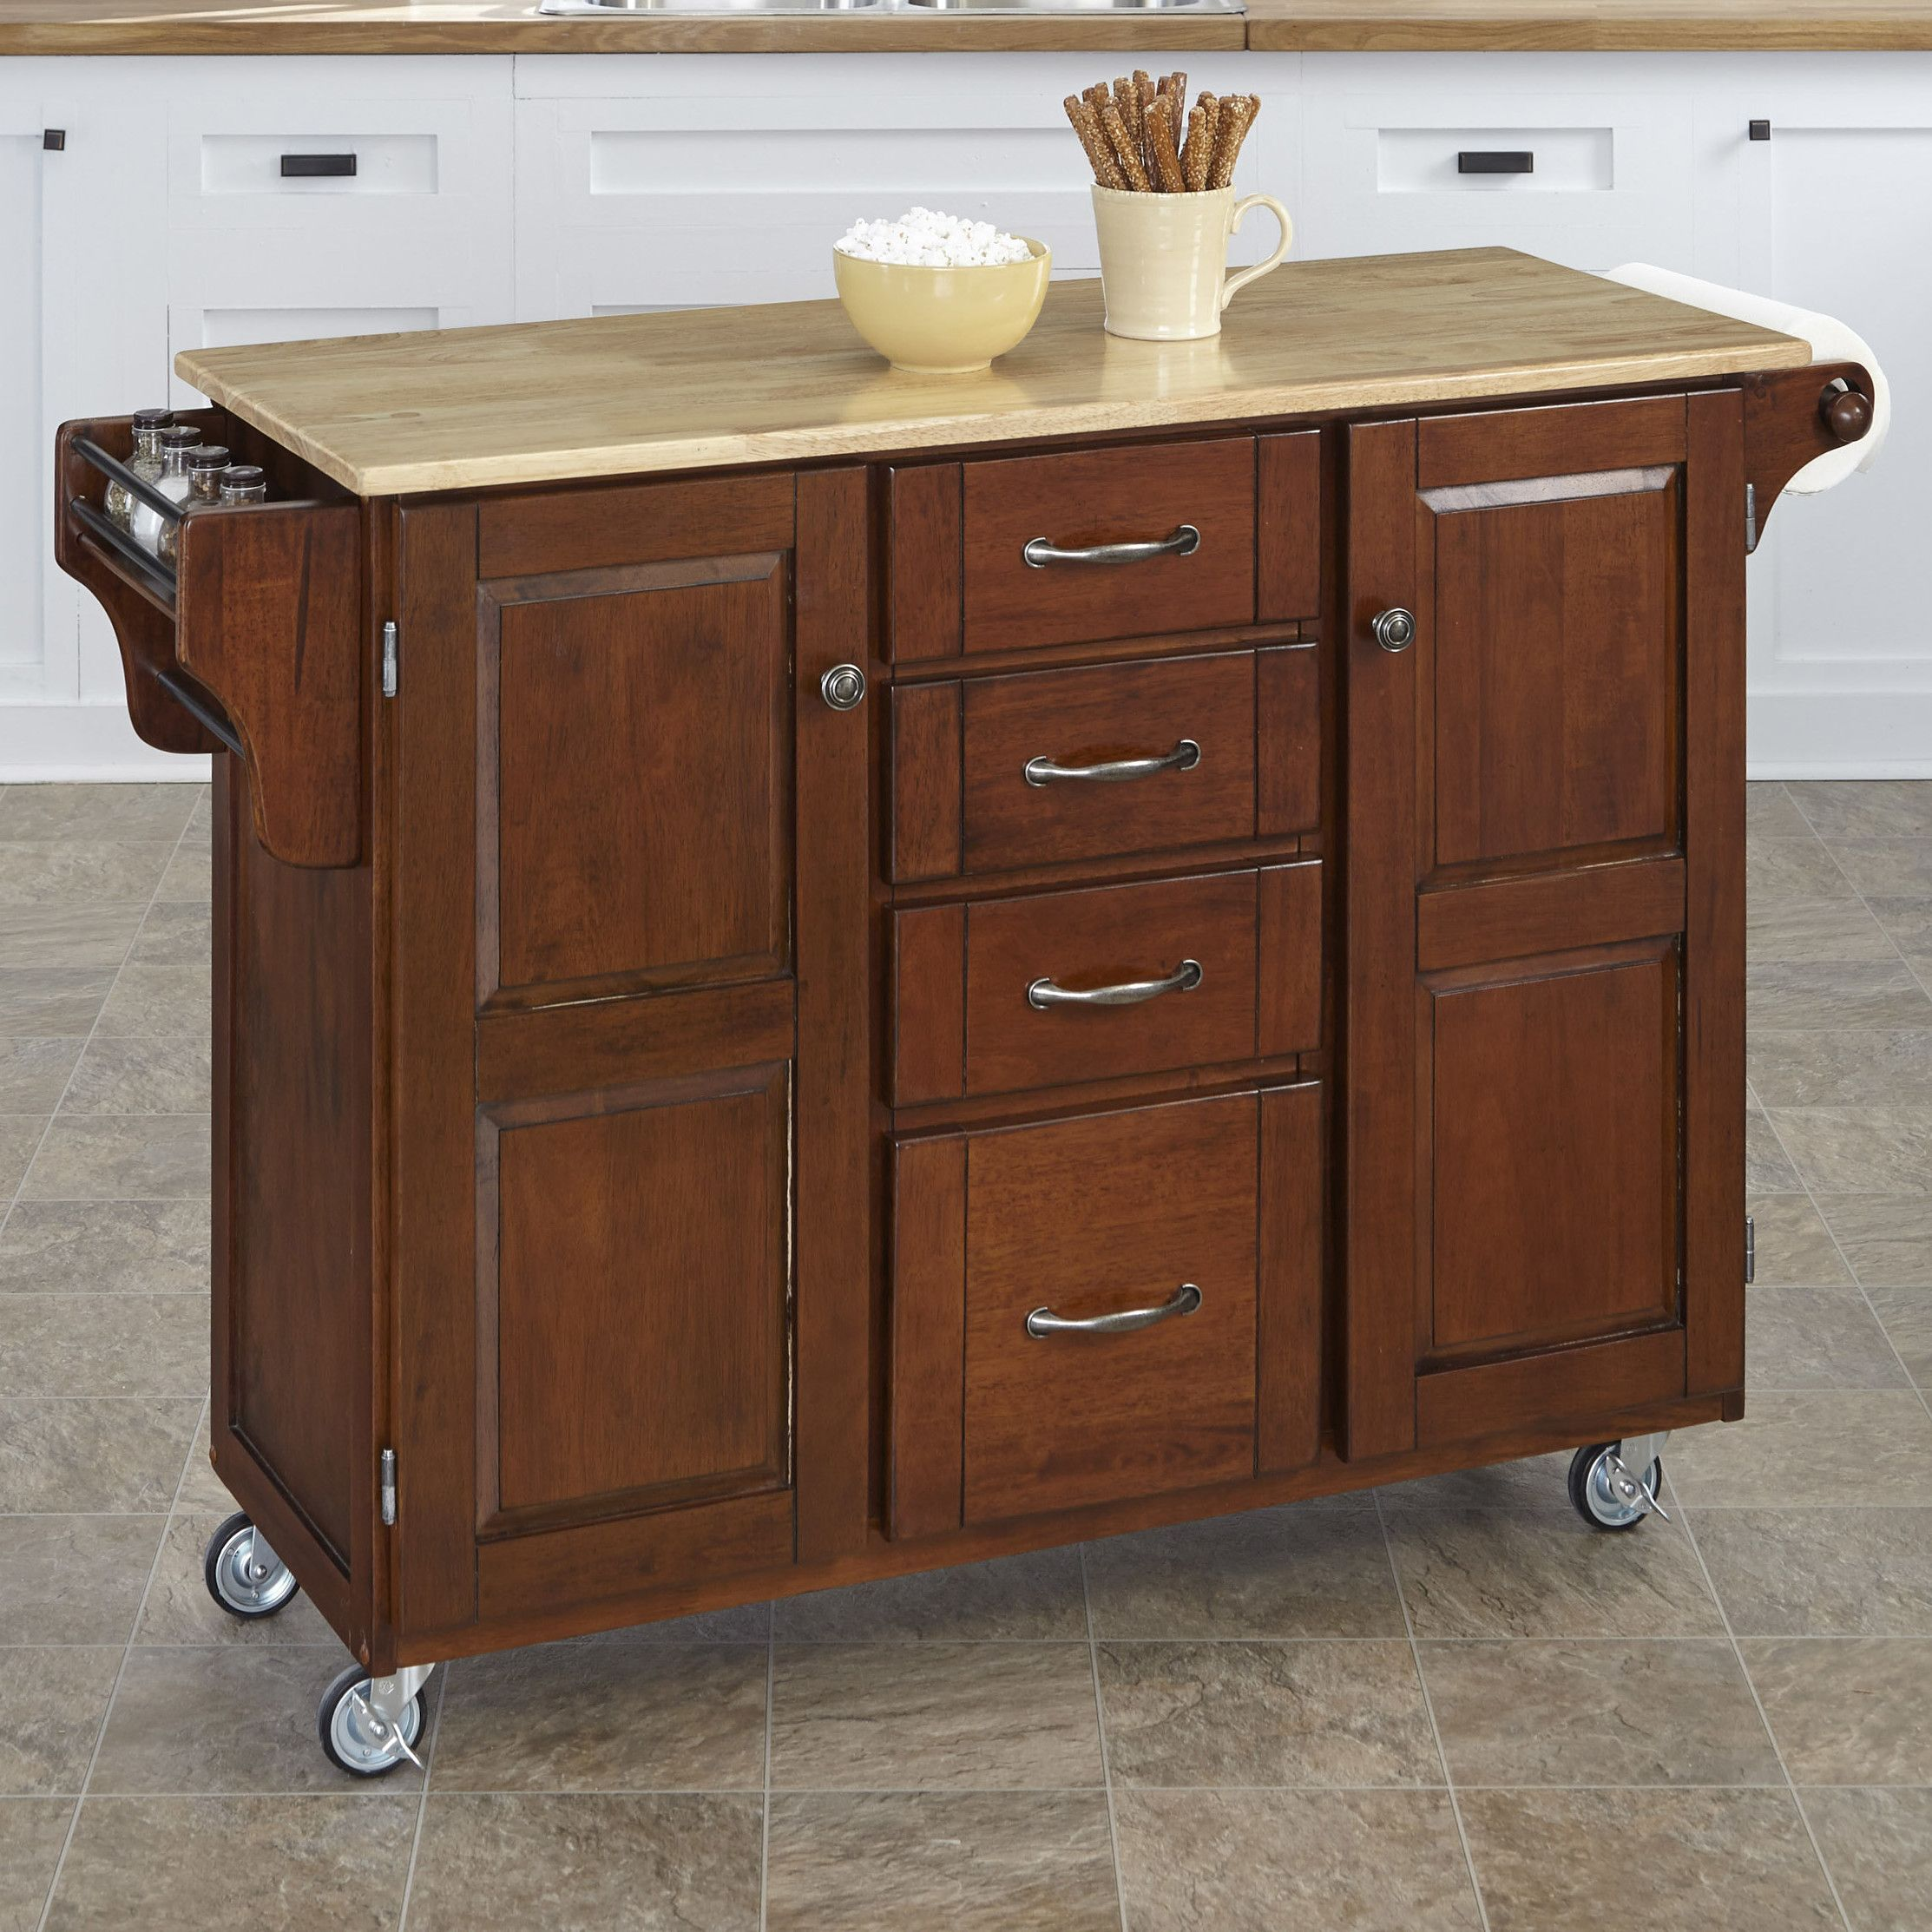 August Grove Adelle Cart Kitchen Island With Butcher Block Top Simple Rustic Kitchen Cart 2018